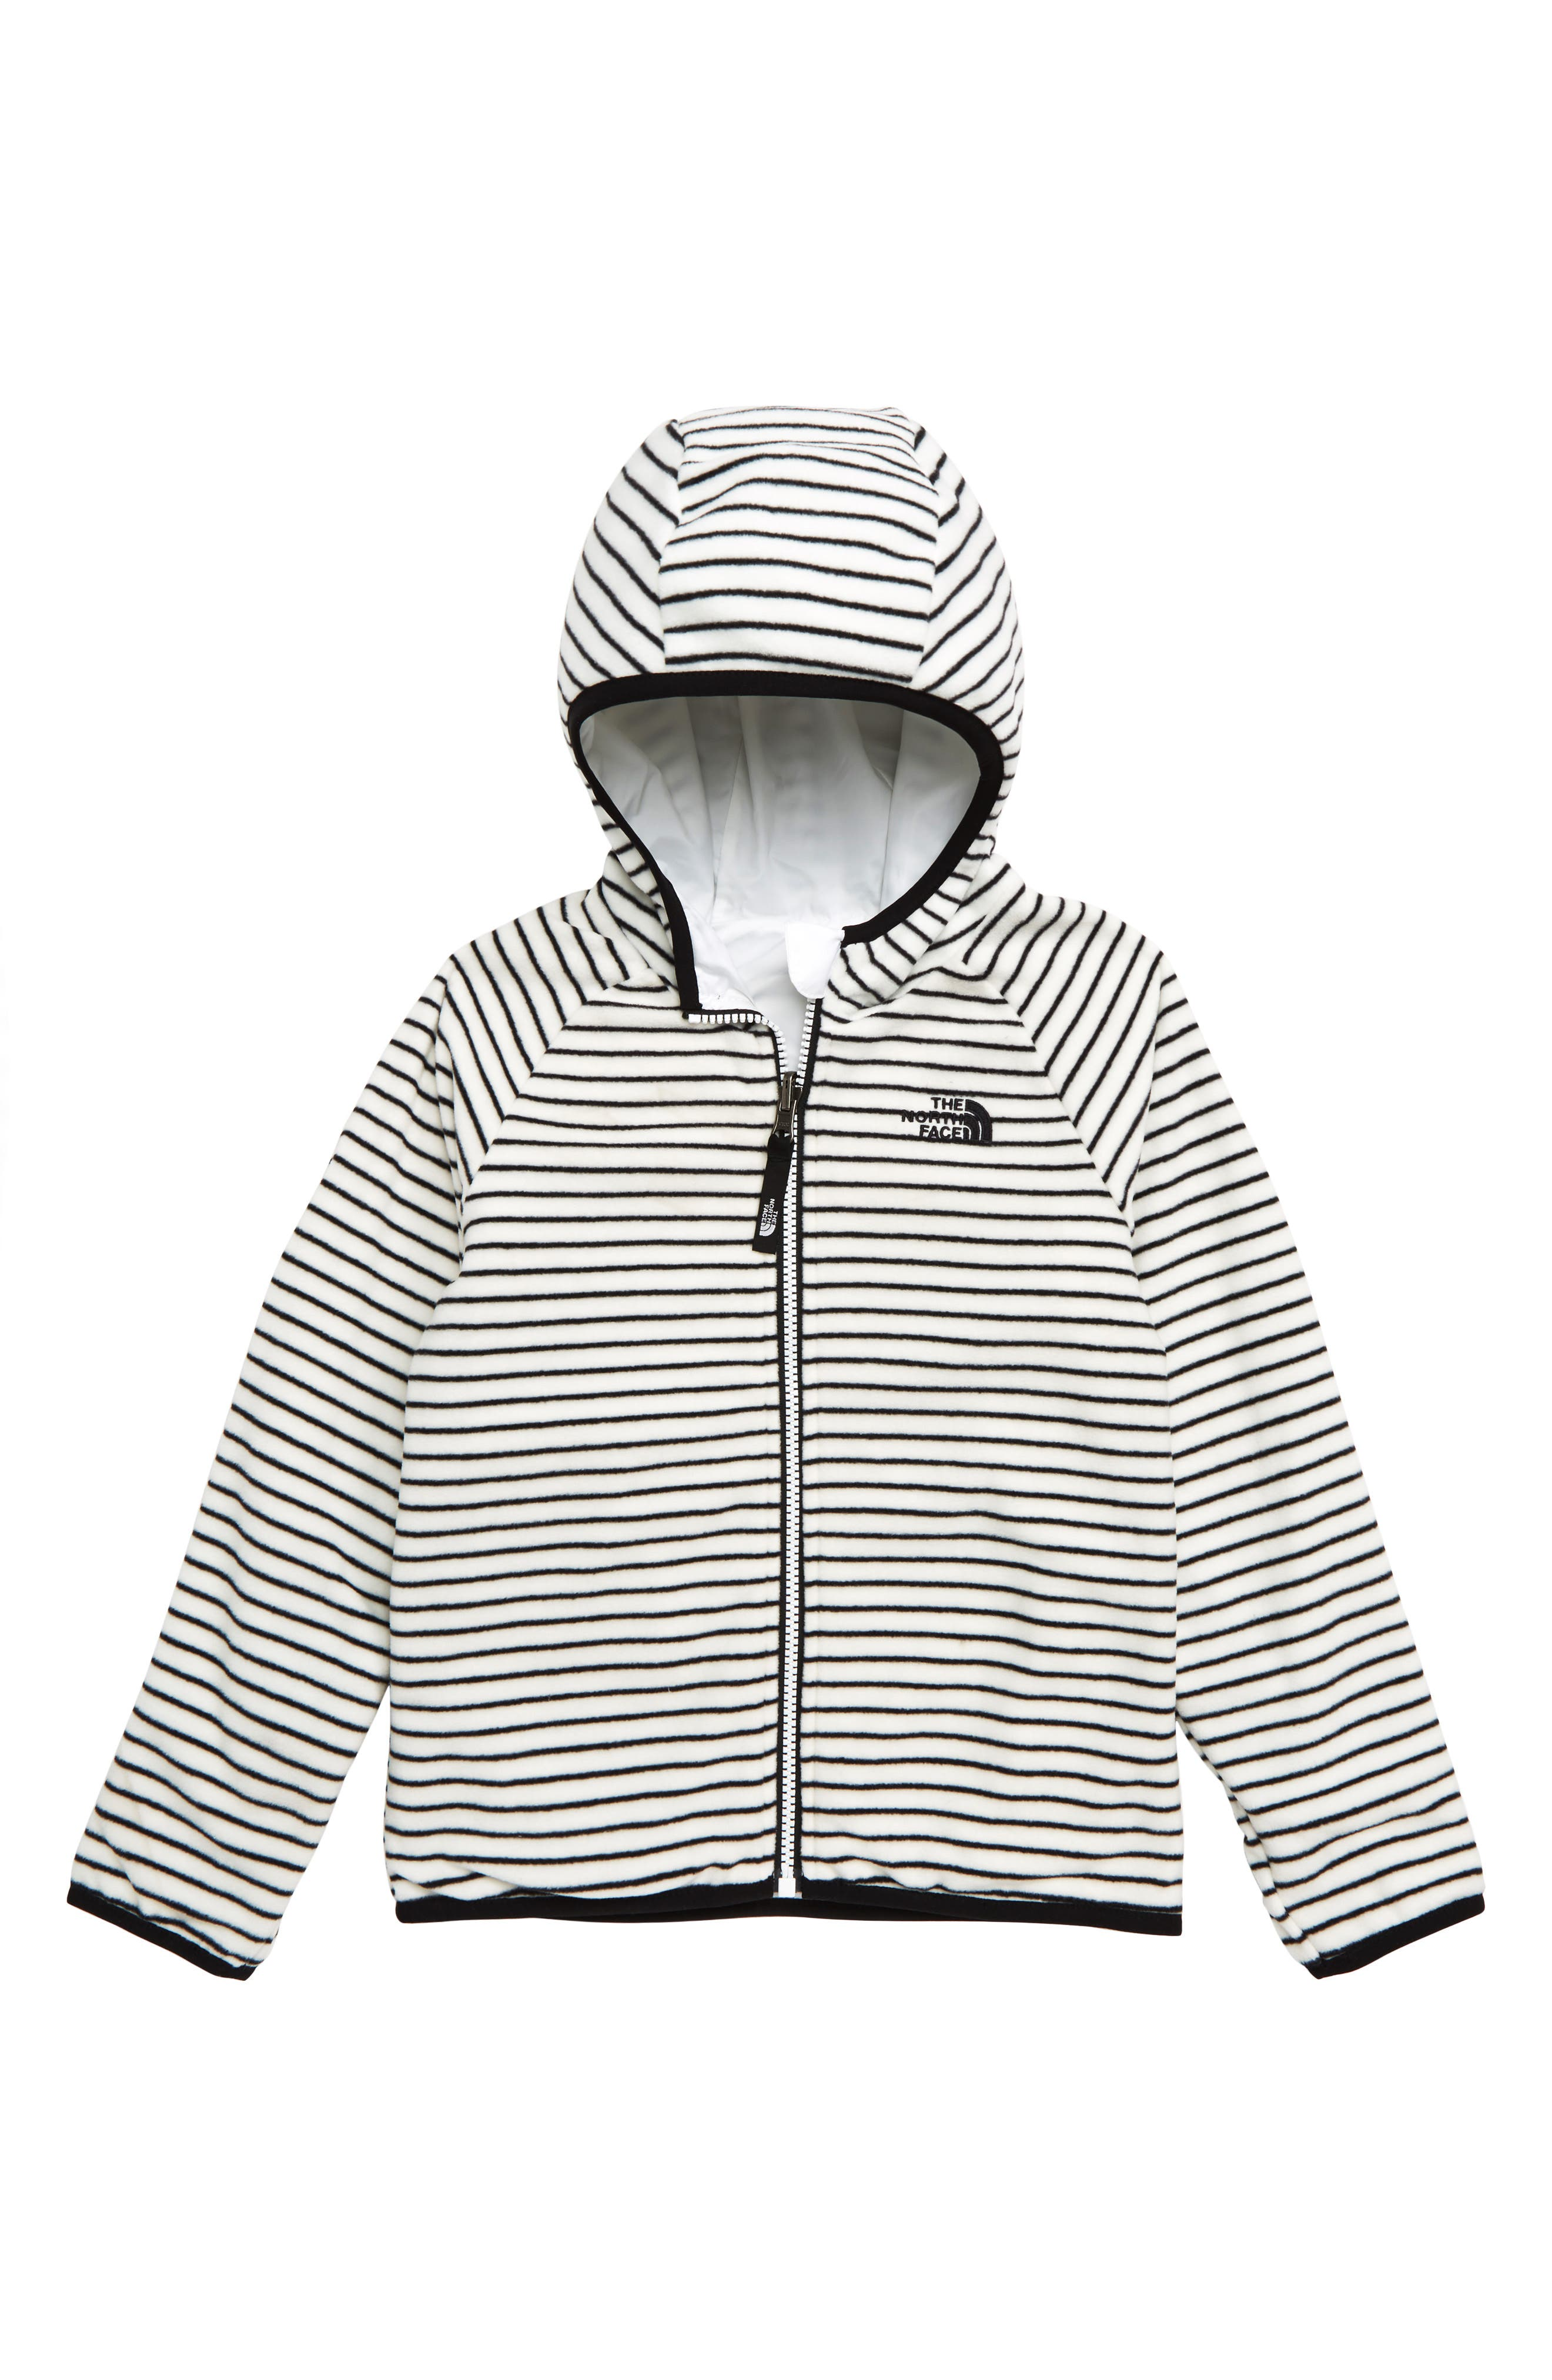 THE NORTH FACE,                             Breezeway Reversible Water Repellent Windproof Jacket,                             Alternate thumbnail 2, color,                             TNF WHITE